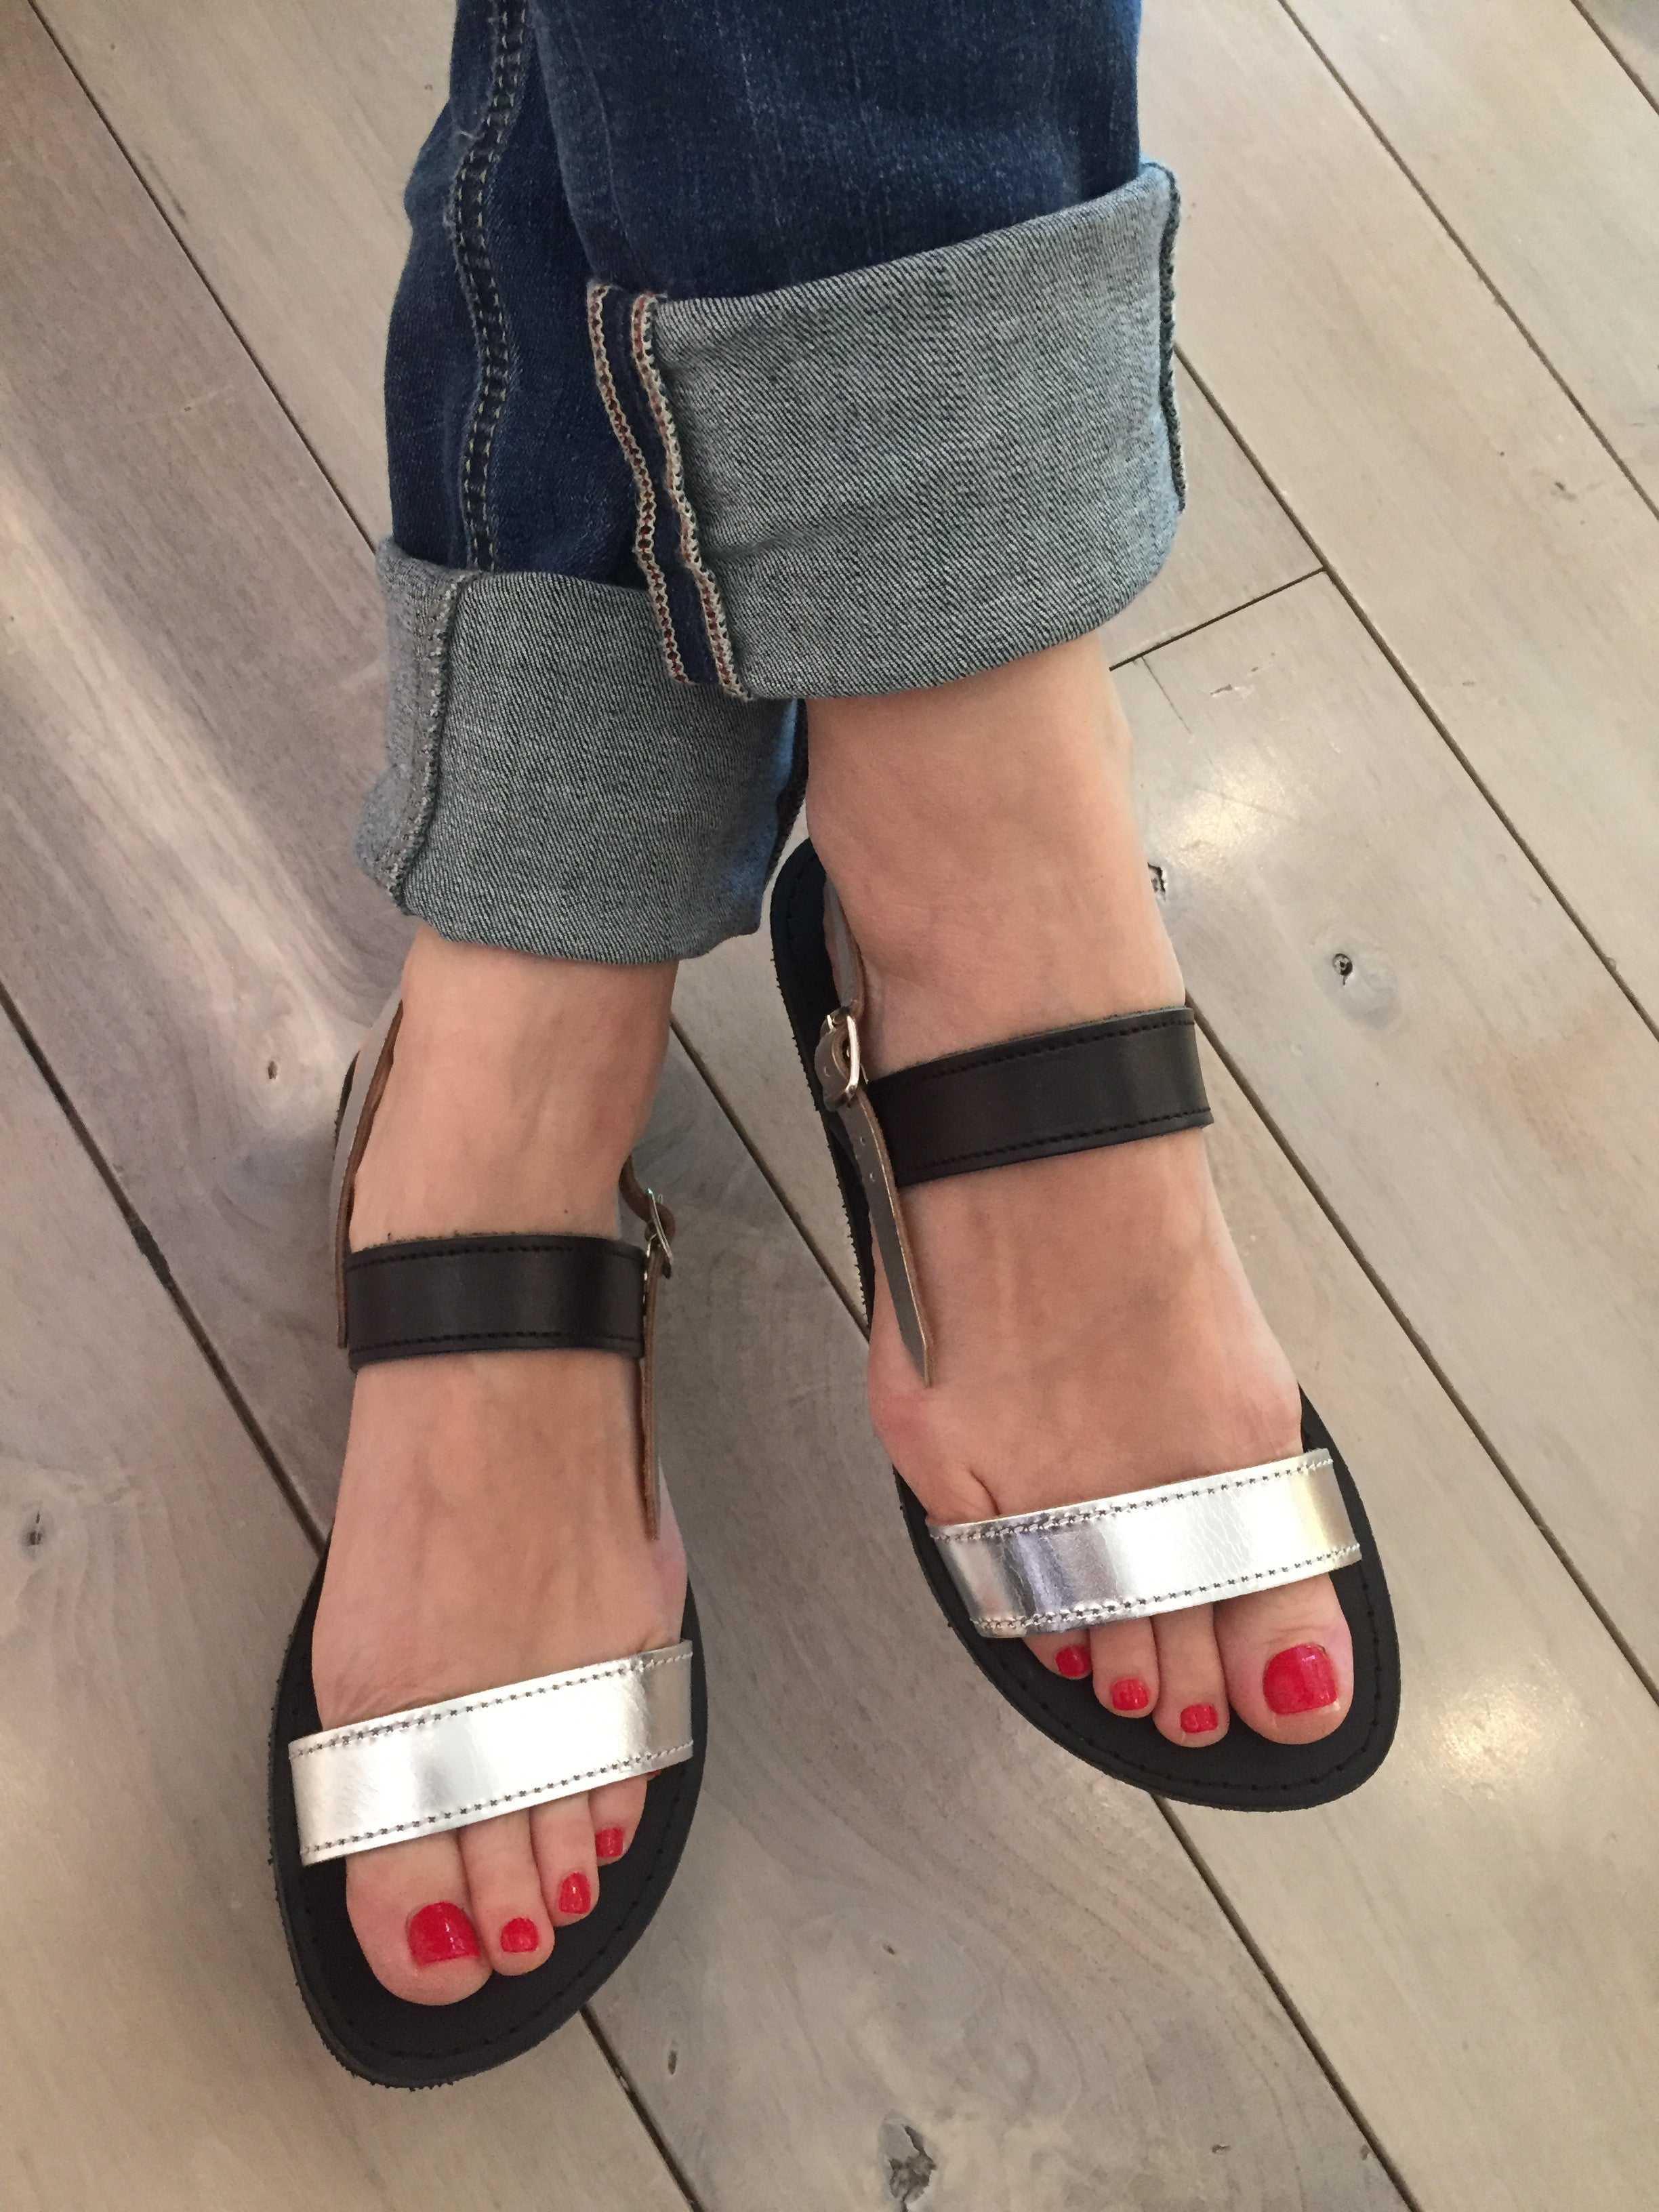 Elpida Greek Leather Sandals - Silver/Black